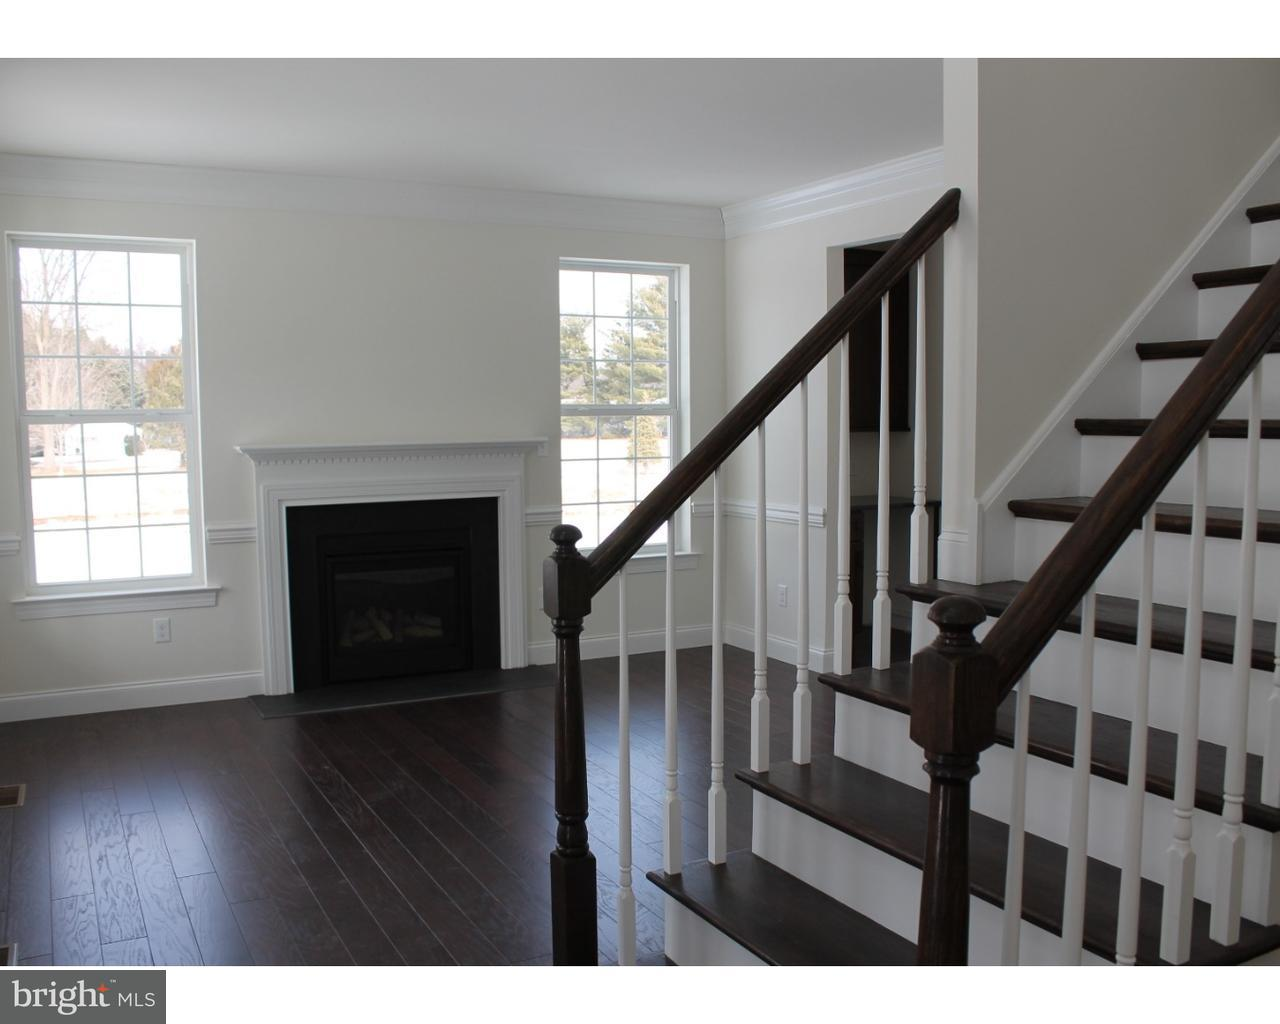 2210 WEBER RD, LANSDALE - Listed at $629,900, LANSDALE